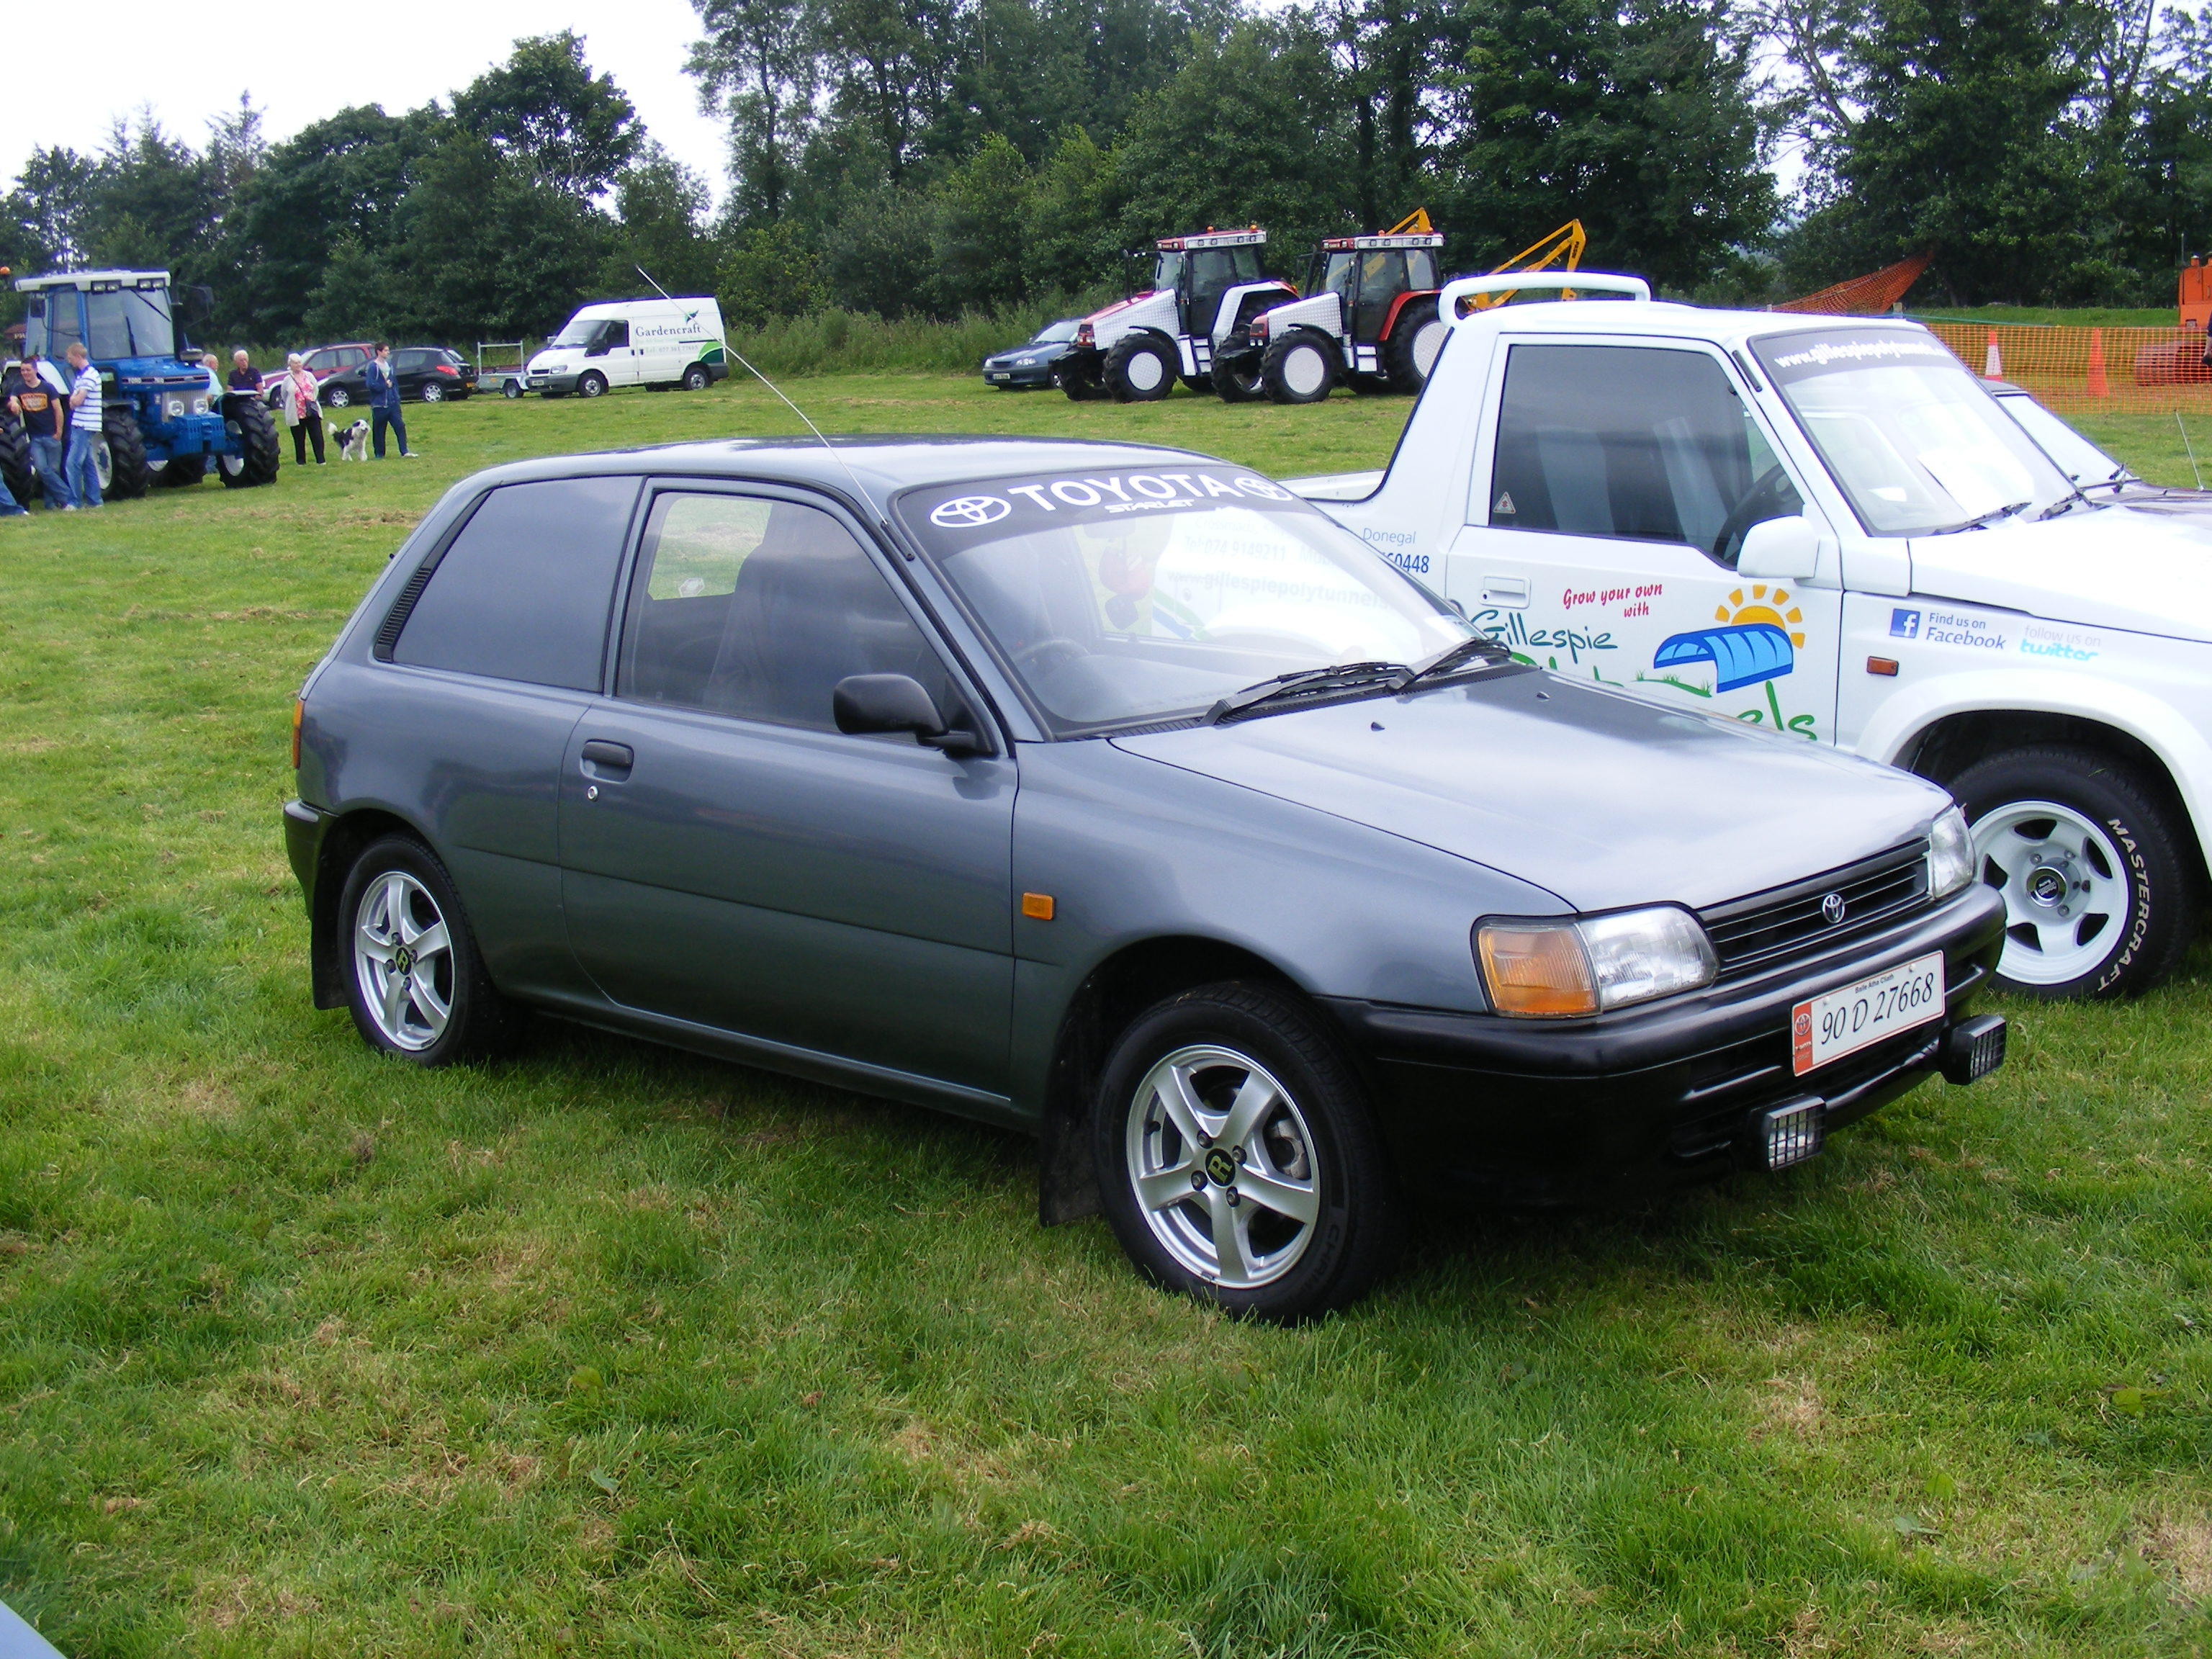 Finn Valley Vintage Rally 2012 1990 Toyota Starlet Van | Flickr ...